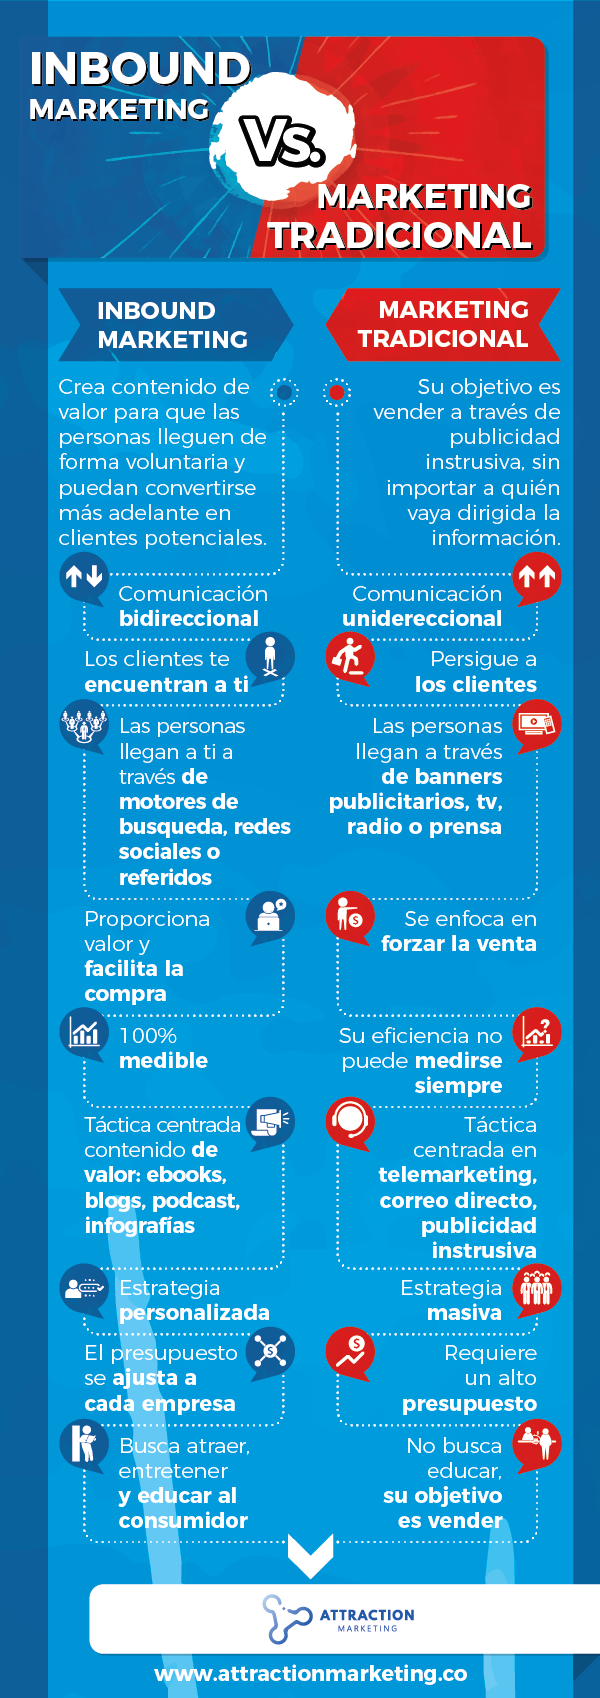 Inbound-marketing-vs-marketing-tradicional-01